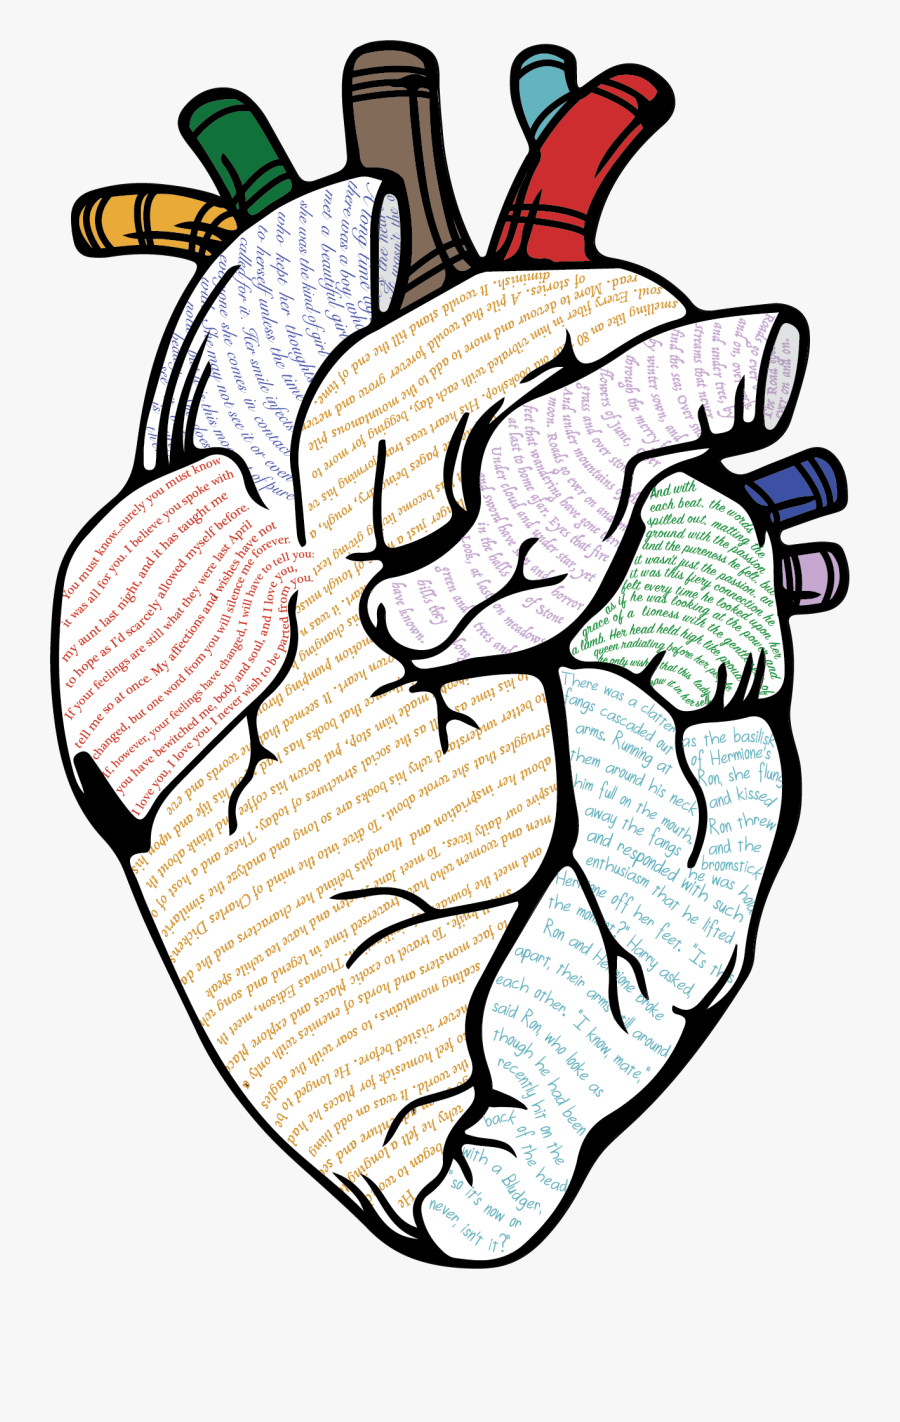 I Absolutely Fell In Love With It Clipart , Png Download - Human Heart Outline Png, Transparent Clipart